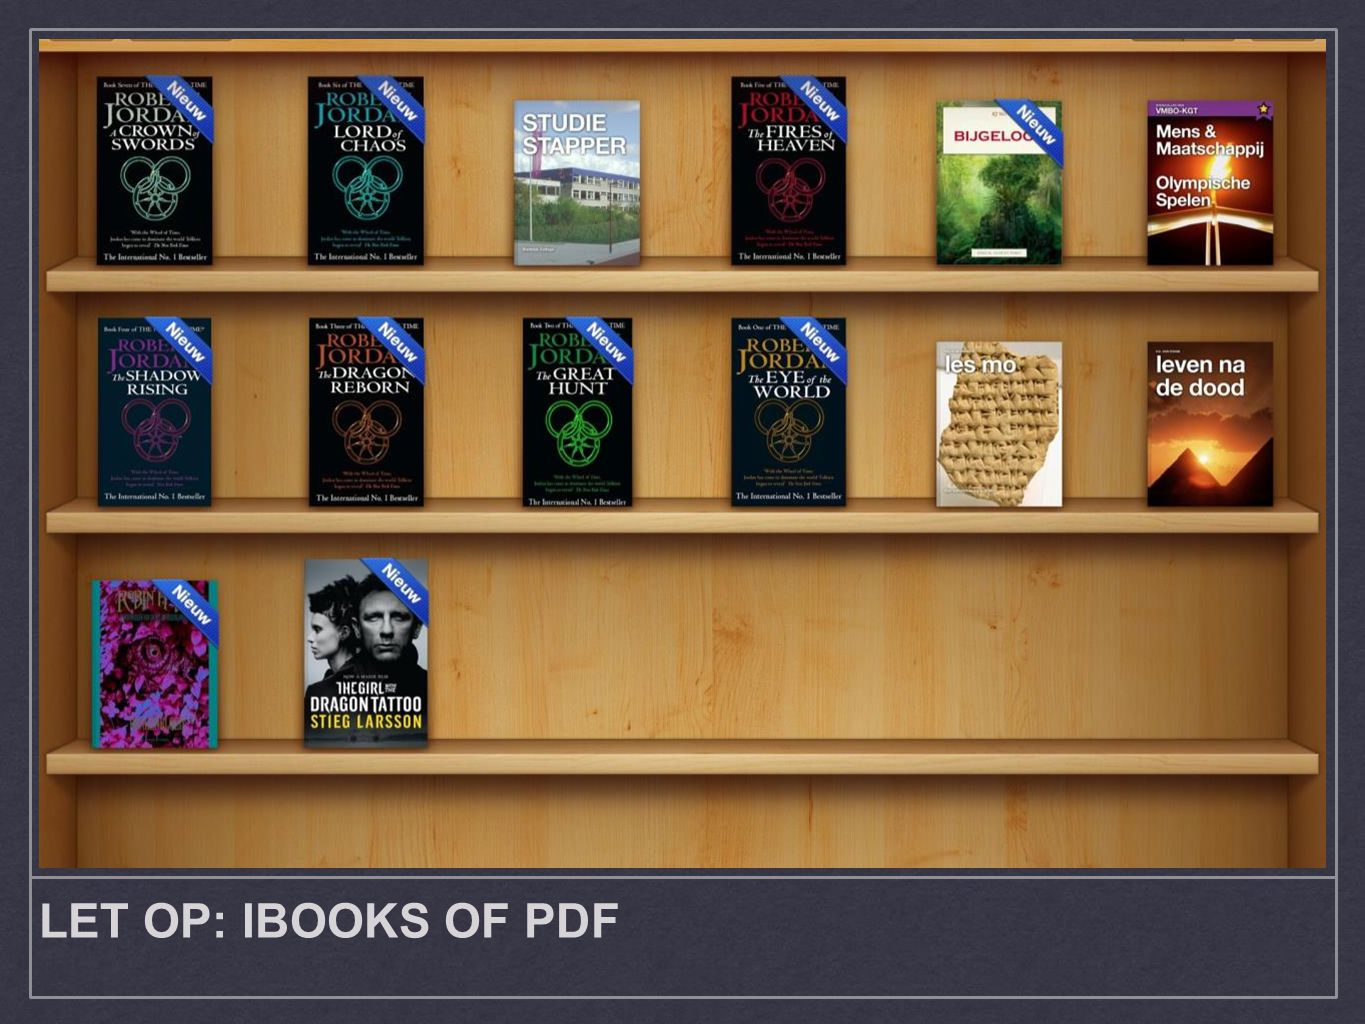 LET OP: IBOOKS OF PDF